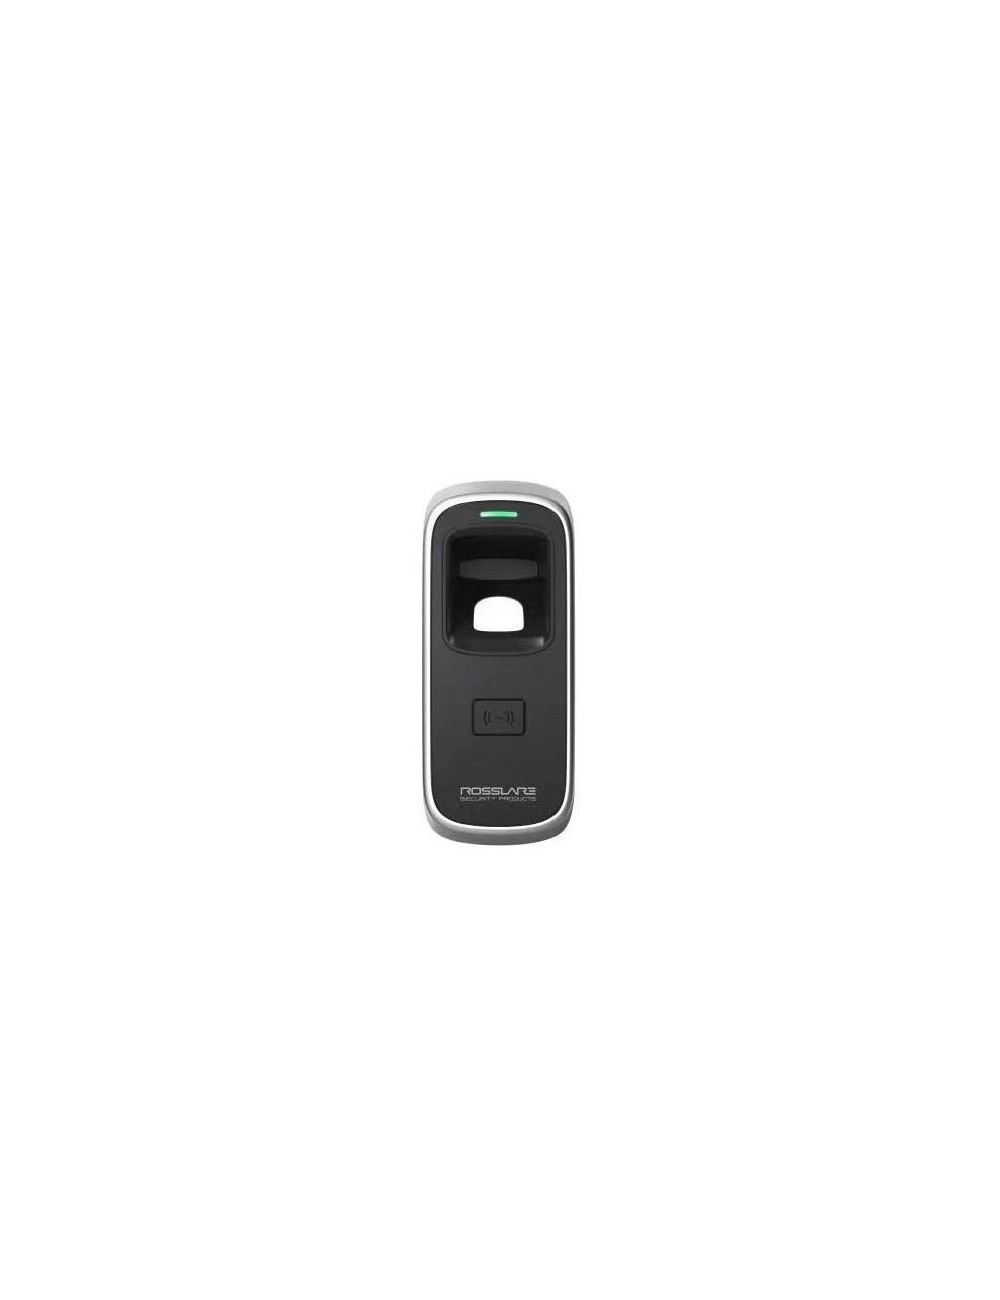 Fingerprint reader with Mifare RFID - Outdoor model